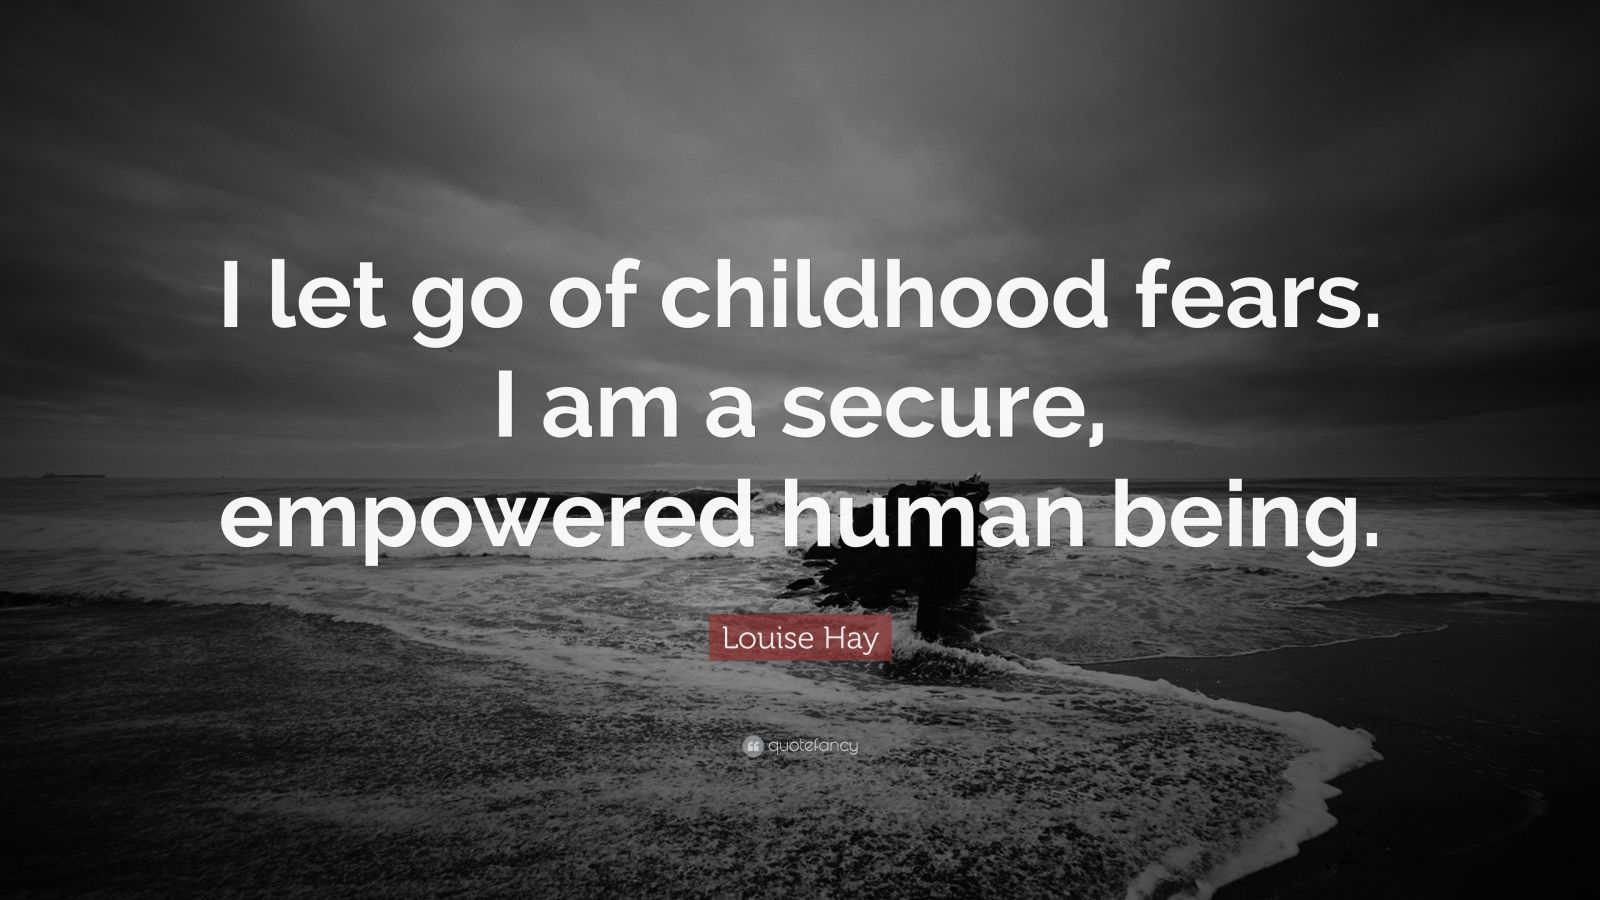 """Louise Hay Quote: """"I let go of childhood fears. I am a secure, empowered human being."""""""